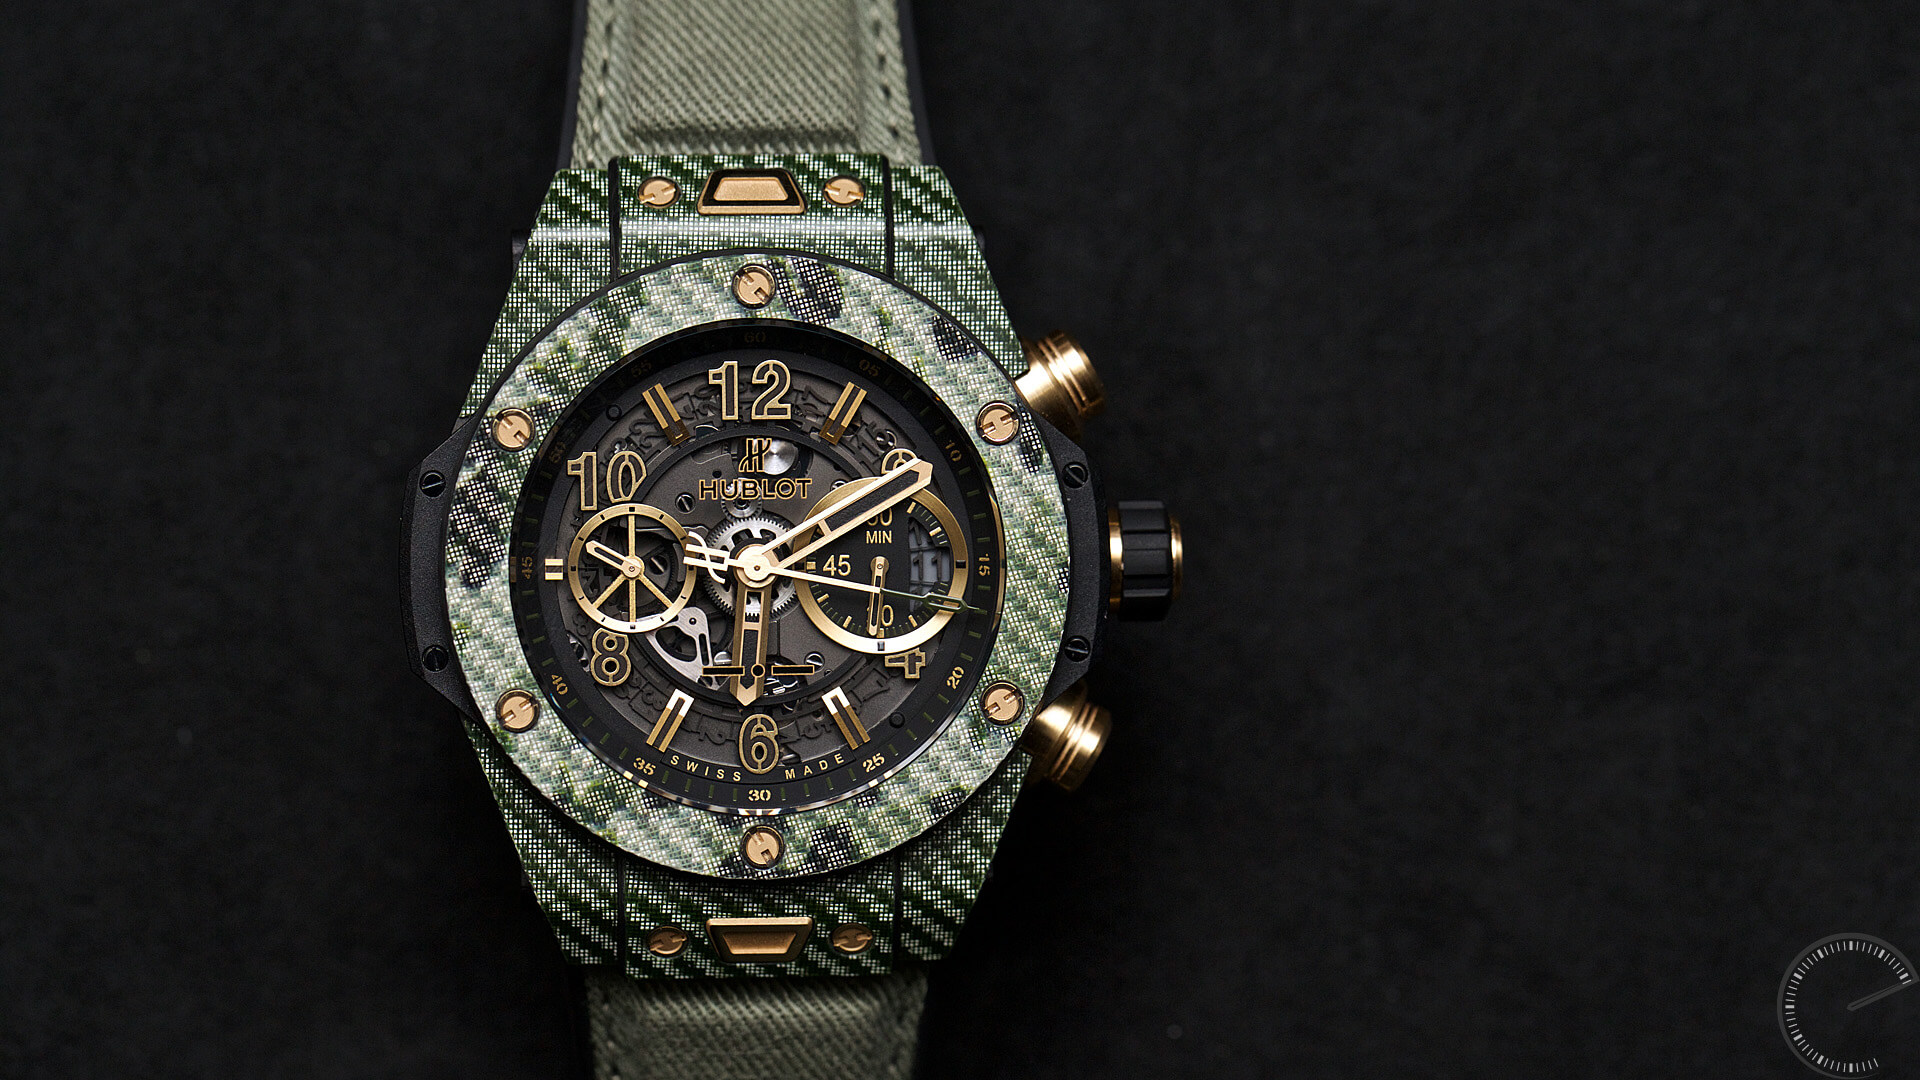 Hublot_Big_Bang_Unico_Italia_Independent_Green_Camo_case1- ESCAPEMENT magazine - watch reviews by Angus Davies